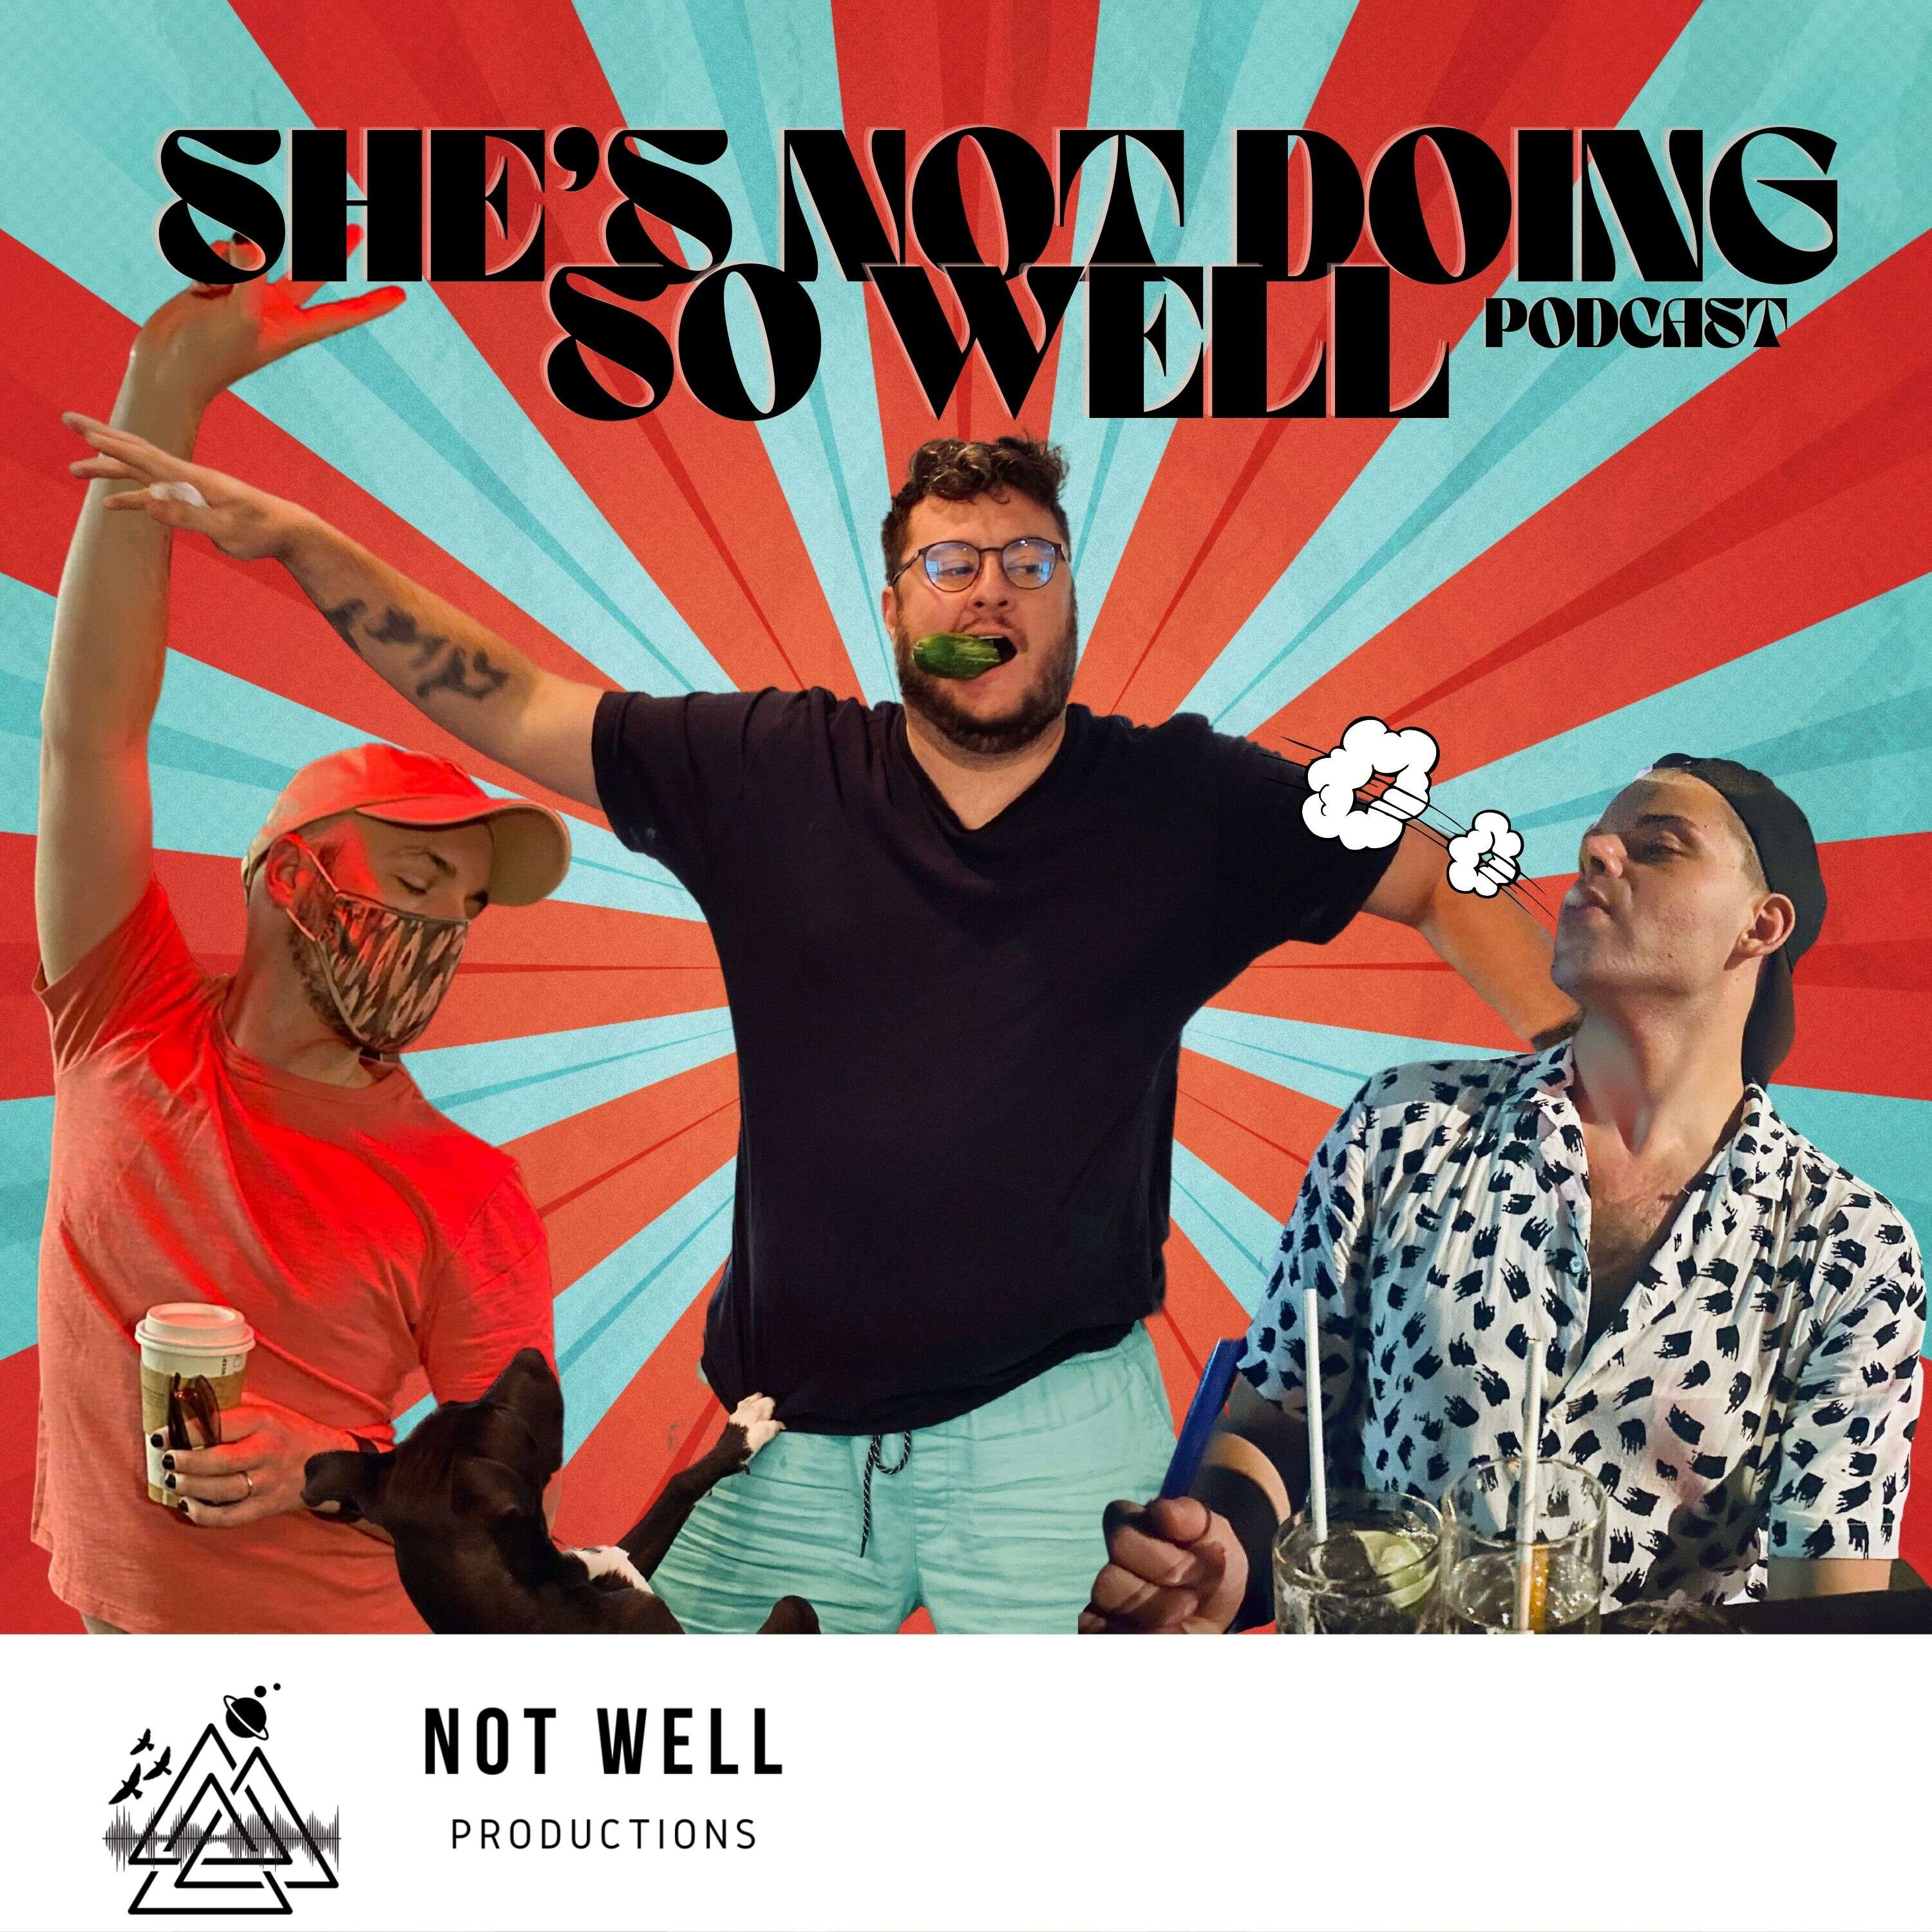 She's Not Doing So Well - A Gay Comedy Podcast